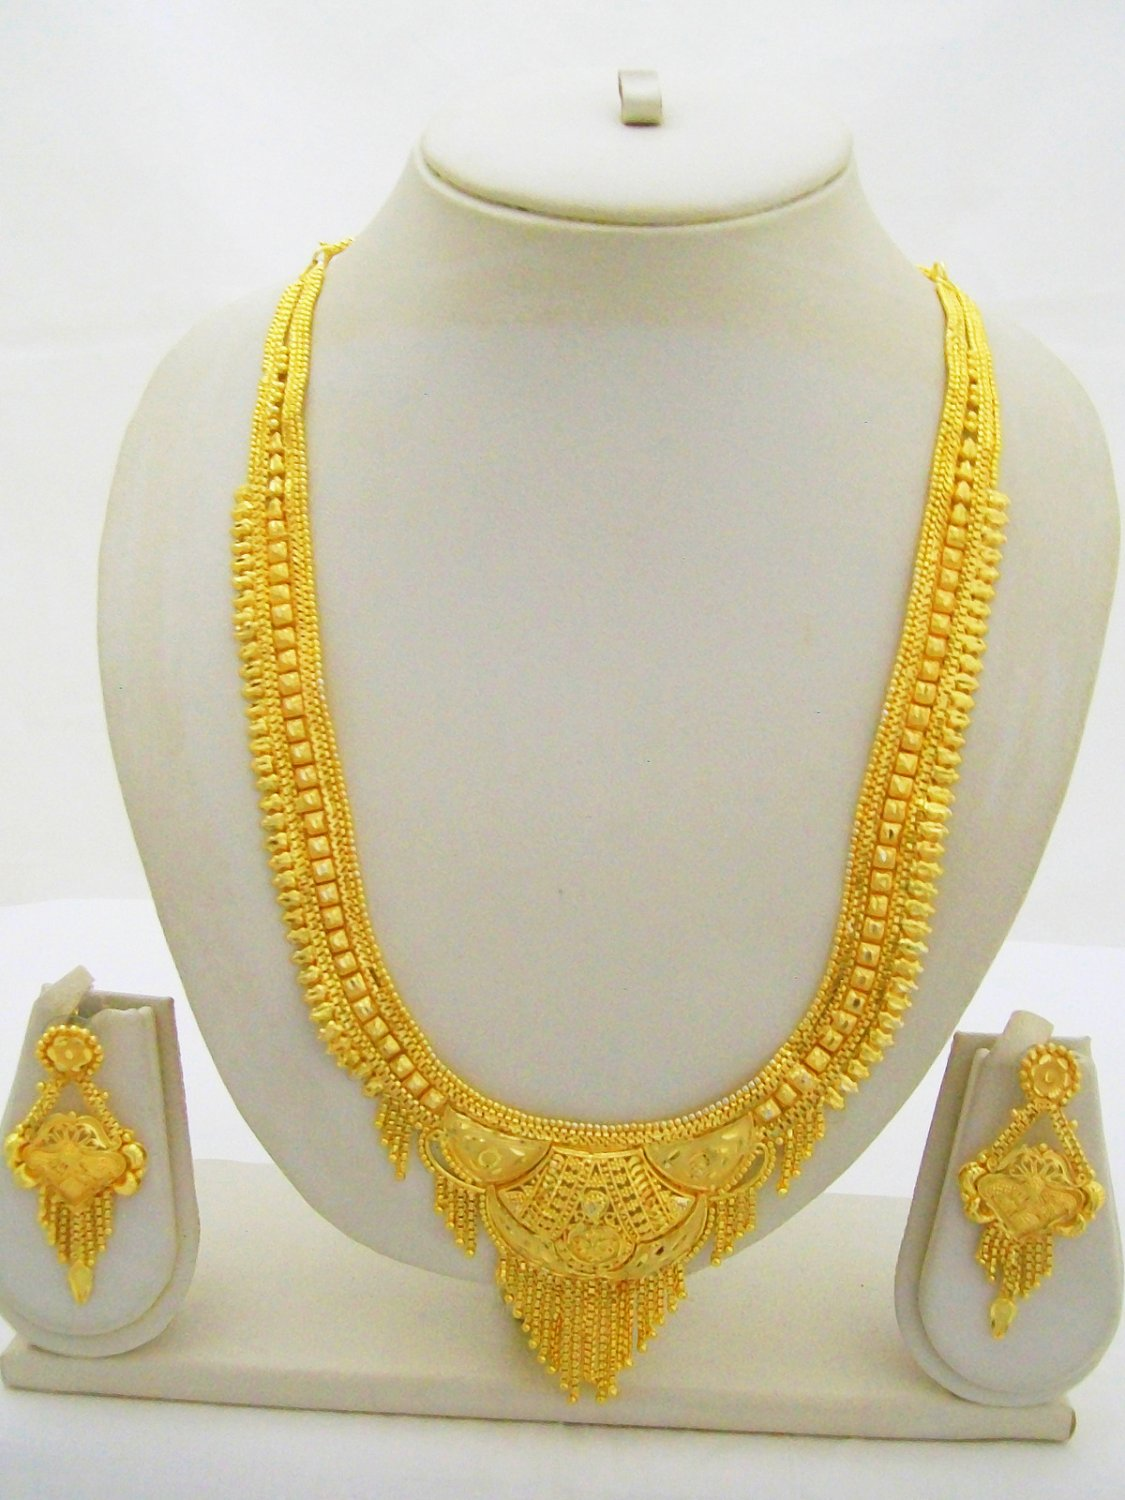 Gold Plated Indian Rani Haar Necklace Earring Filigree Long Ethnic Jewelry Set